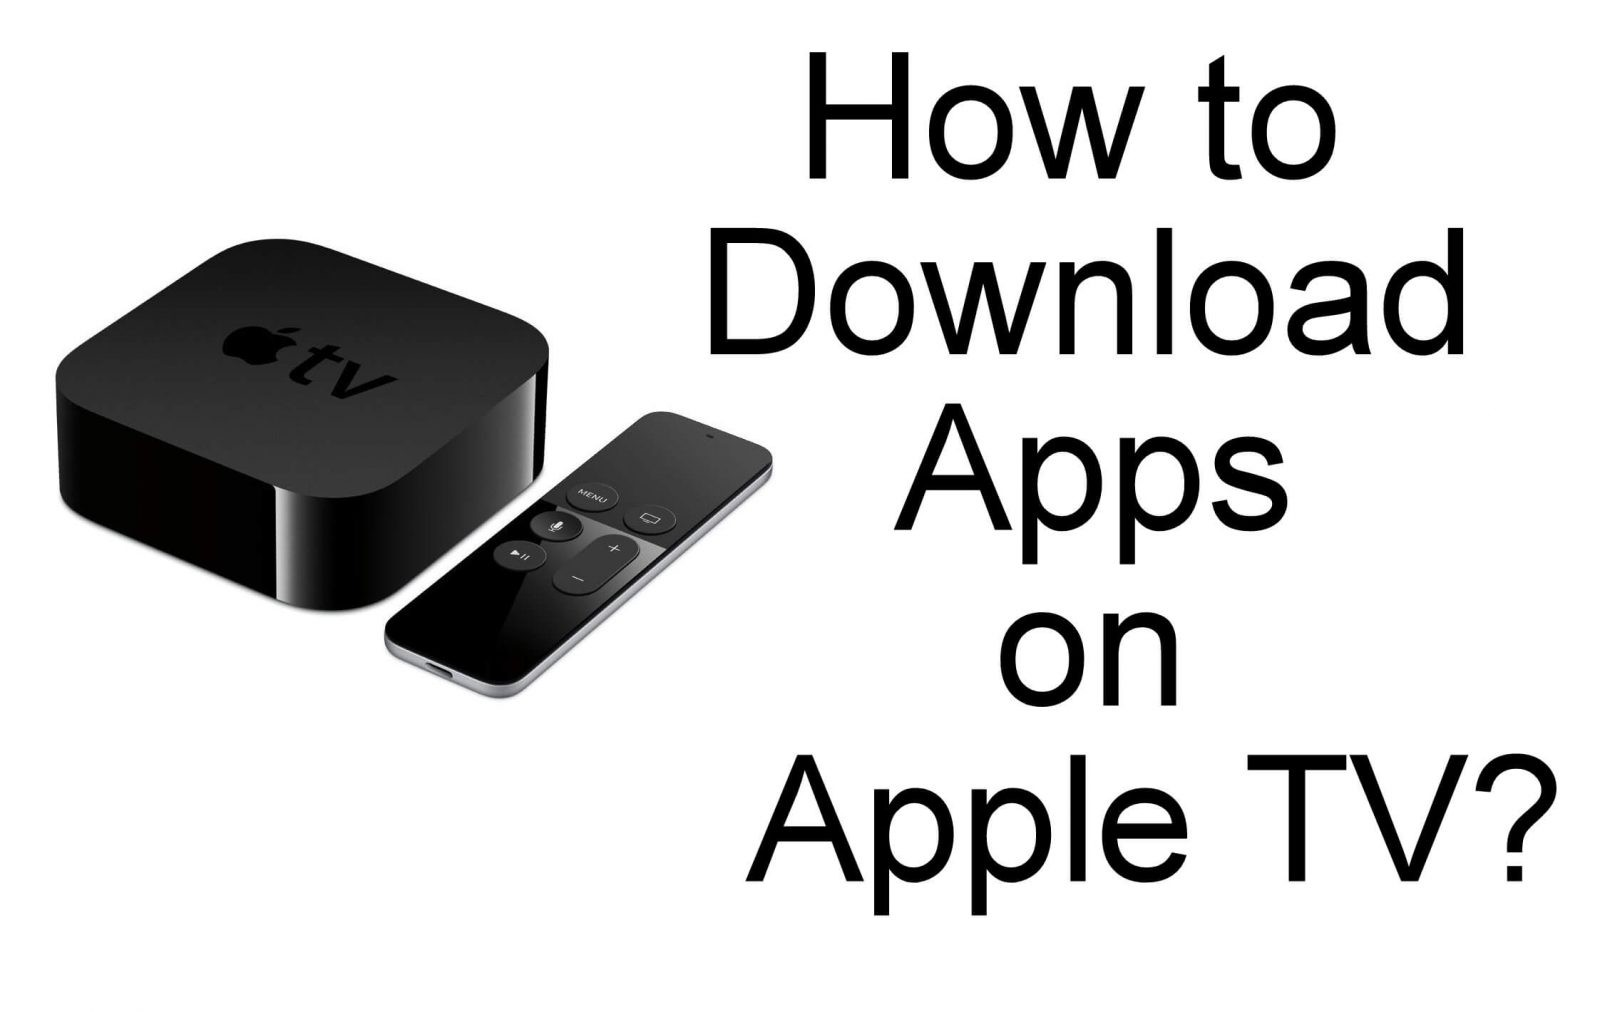 How to Download Apps on Apple TV? - Tech Follows